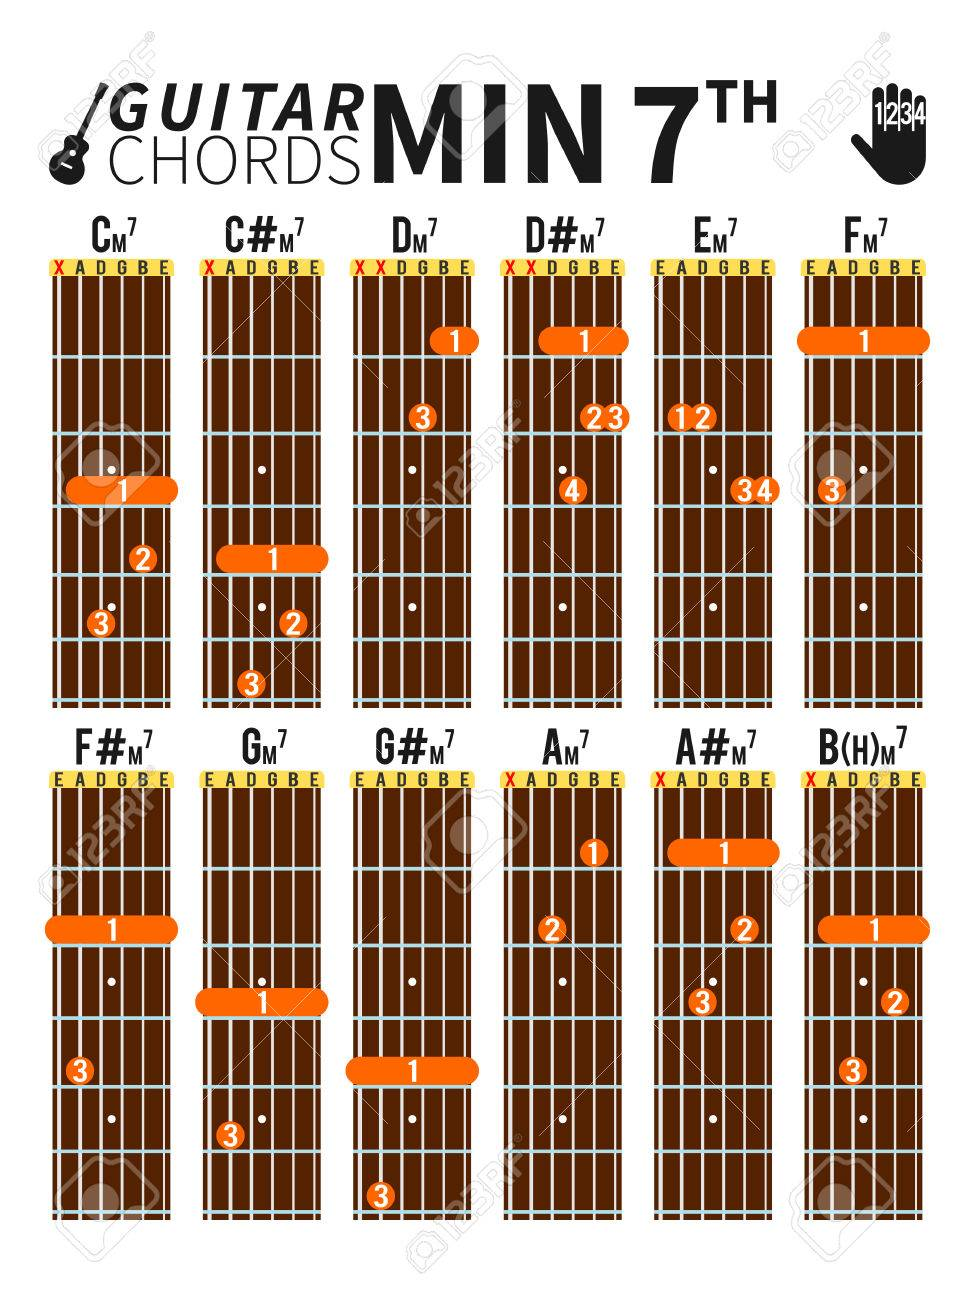 Colorful Minor Seventh Chords Chart For Guitar With Fingers Position